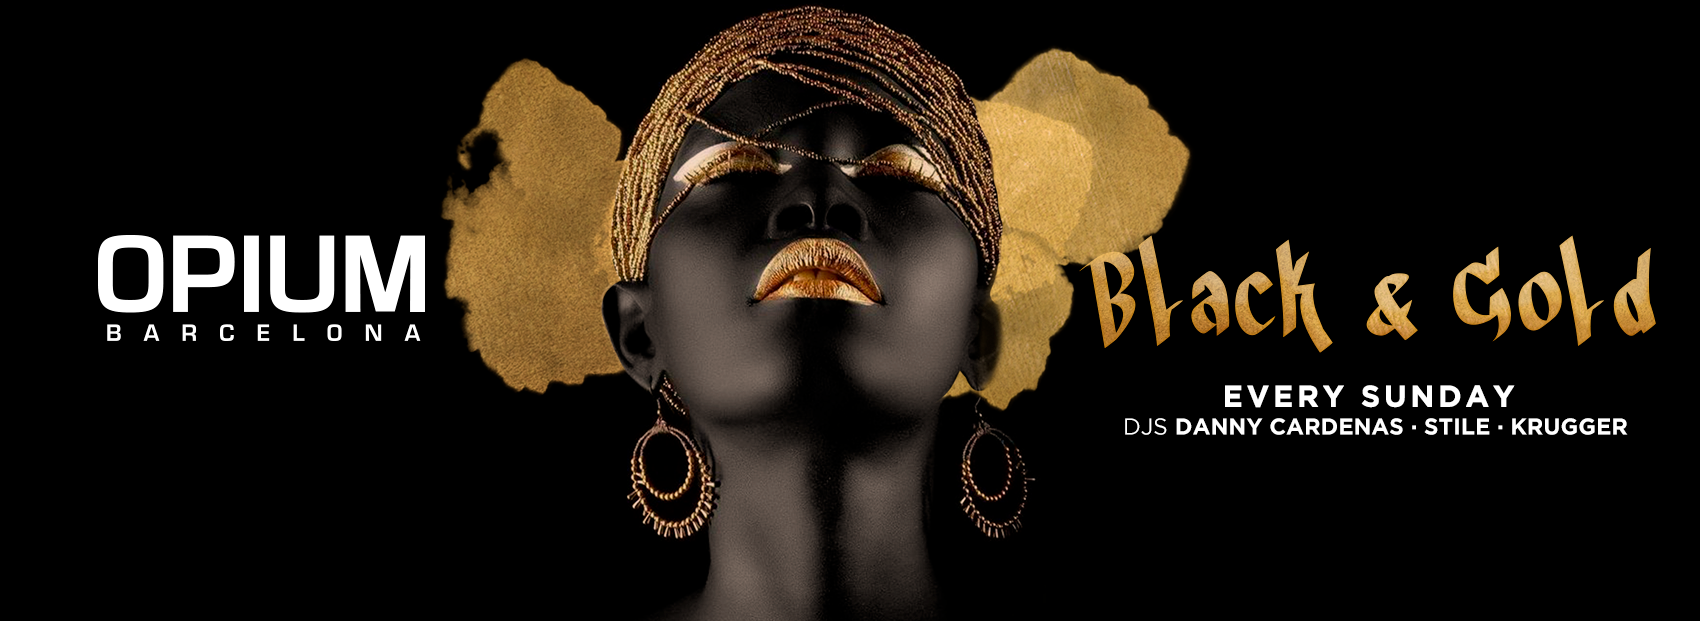 BLACK AND GOLD - Club Opium Barcelona